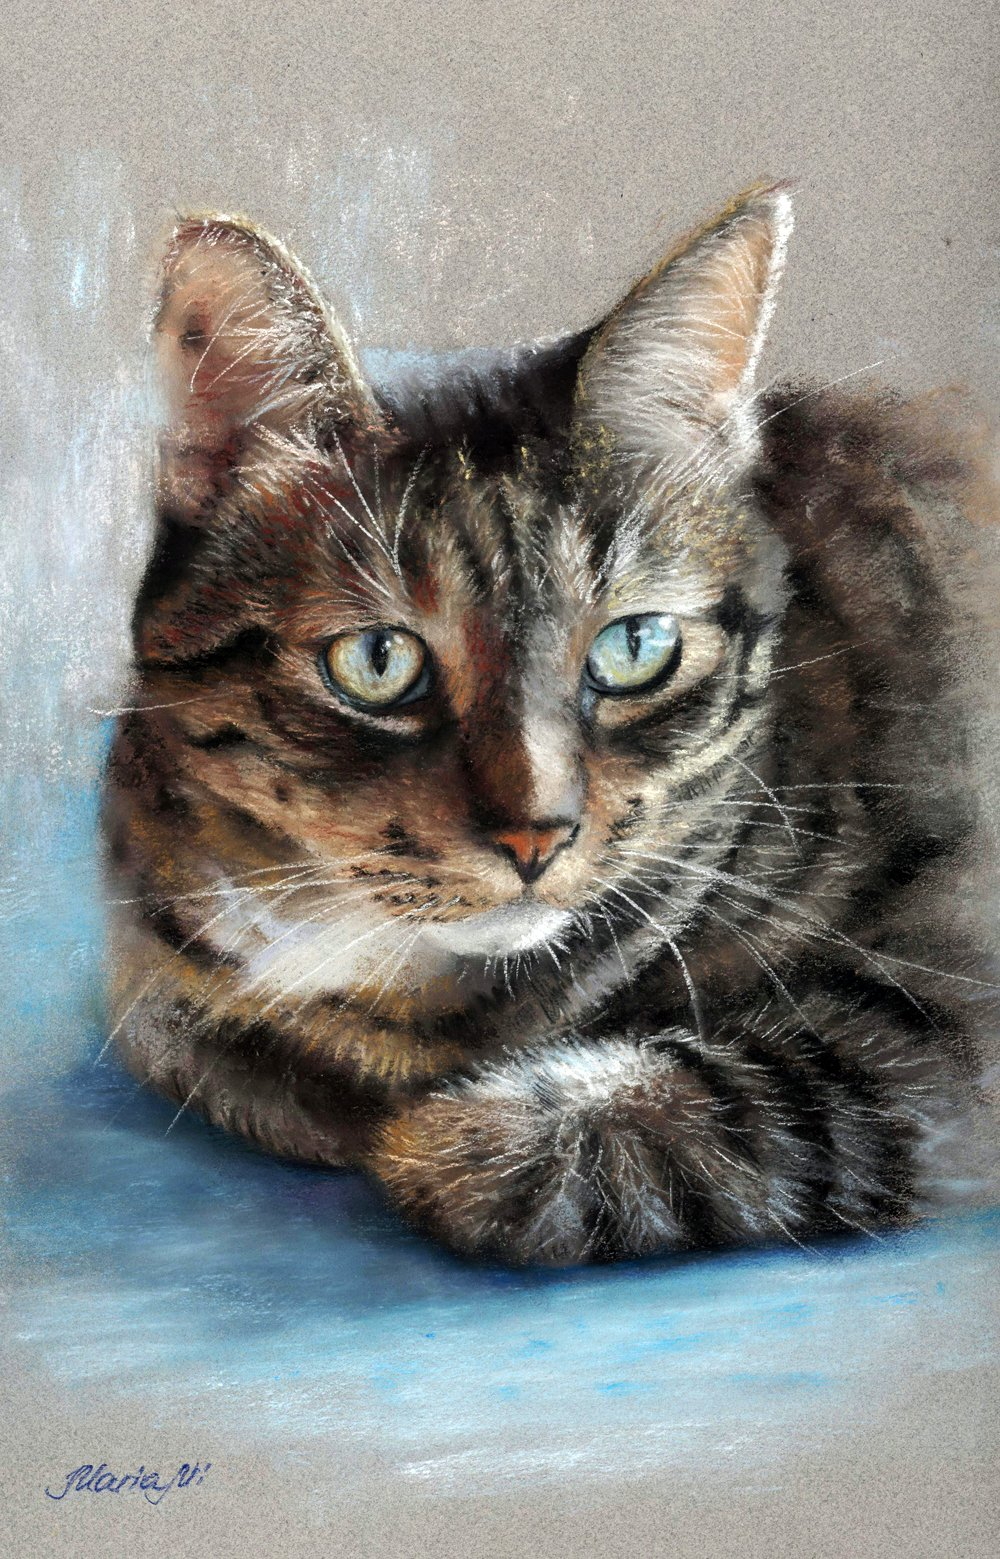 Custom memorial portrait of cat on canvas. Commission personalised artwork drawing of pet from artist. Commissioned gift. MUSEUM QUALITY!